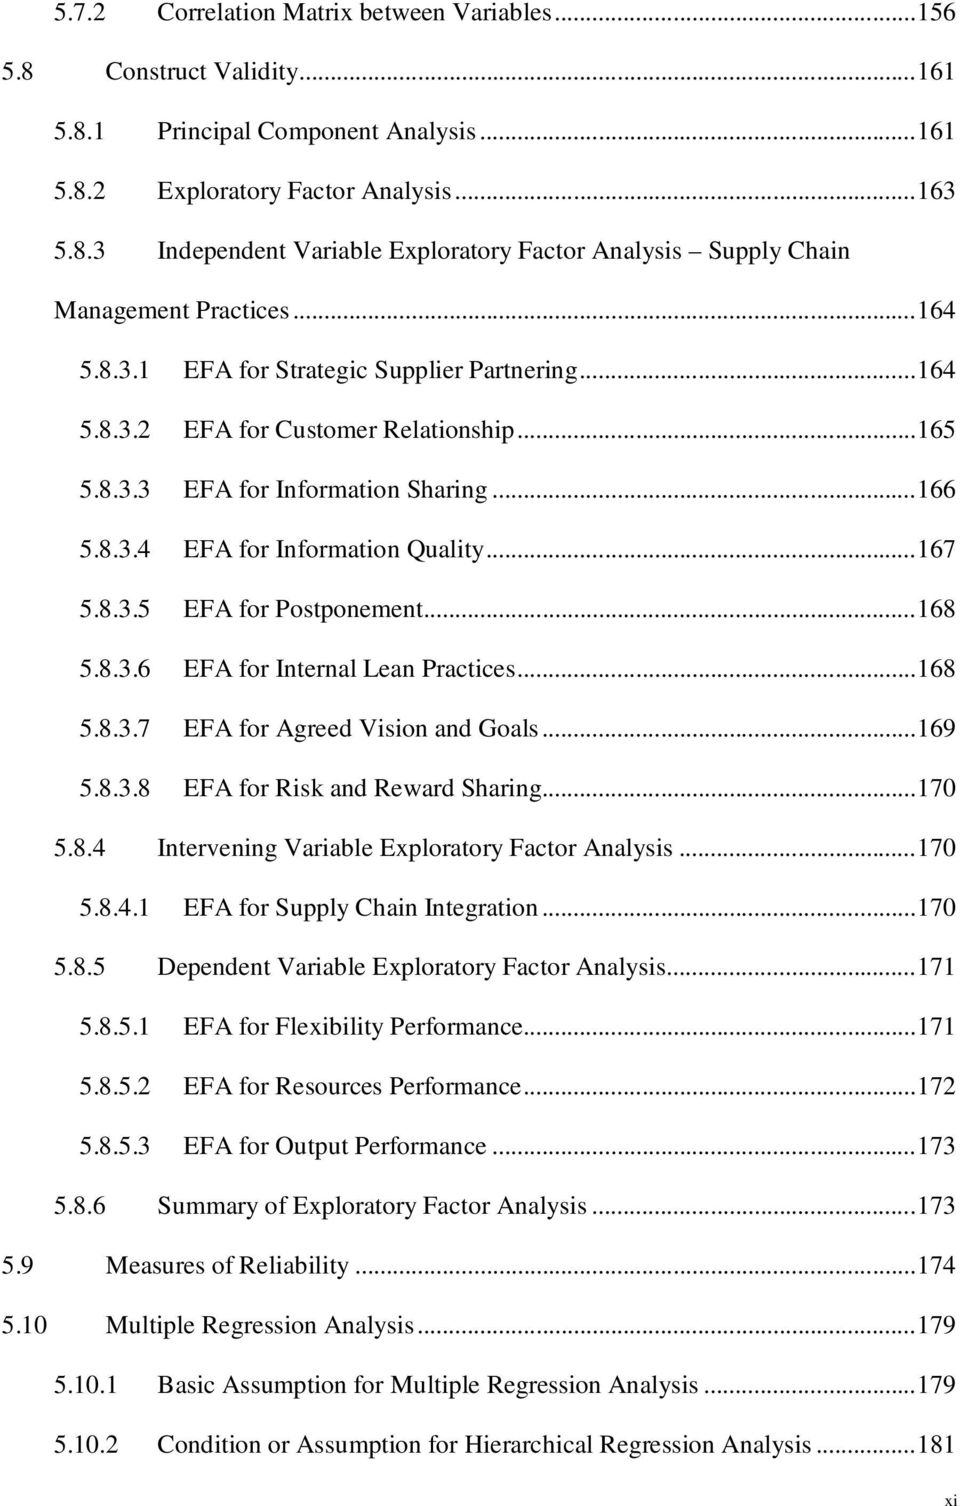 ..168 5.8.3.6 EFA for Internal Lean Practices...168 5.8.3.7 EFA for Agreed Vision and Goals...169 5.8.3.8 EFA for Risk and Reward Sharing...170 5.8.4 Intervening Variable Exploratory Factor Analysis.